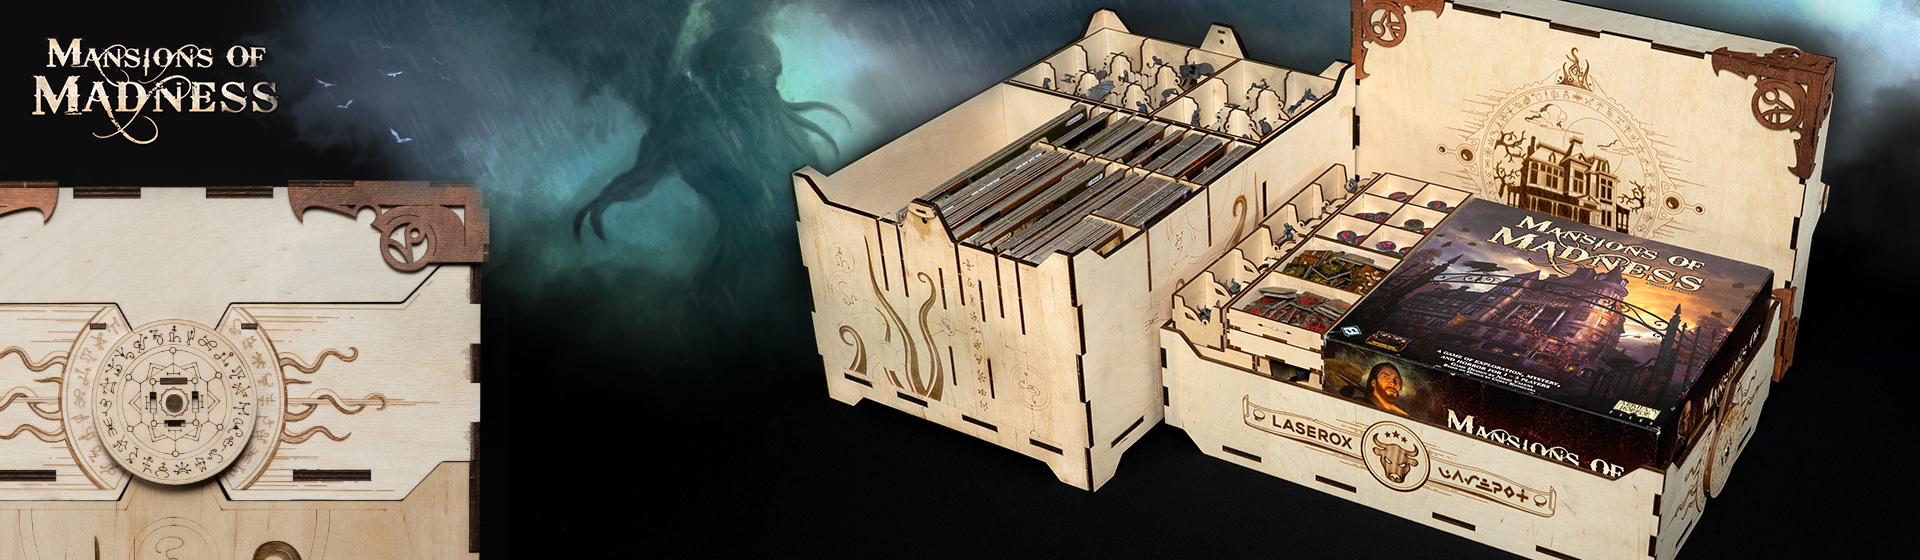 Madness Crate